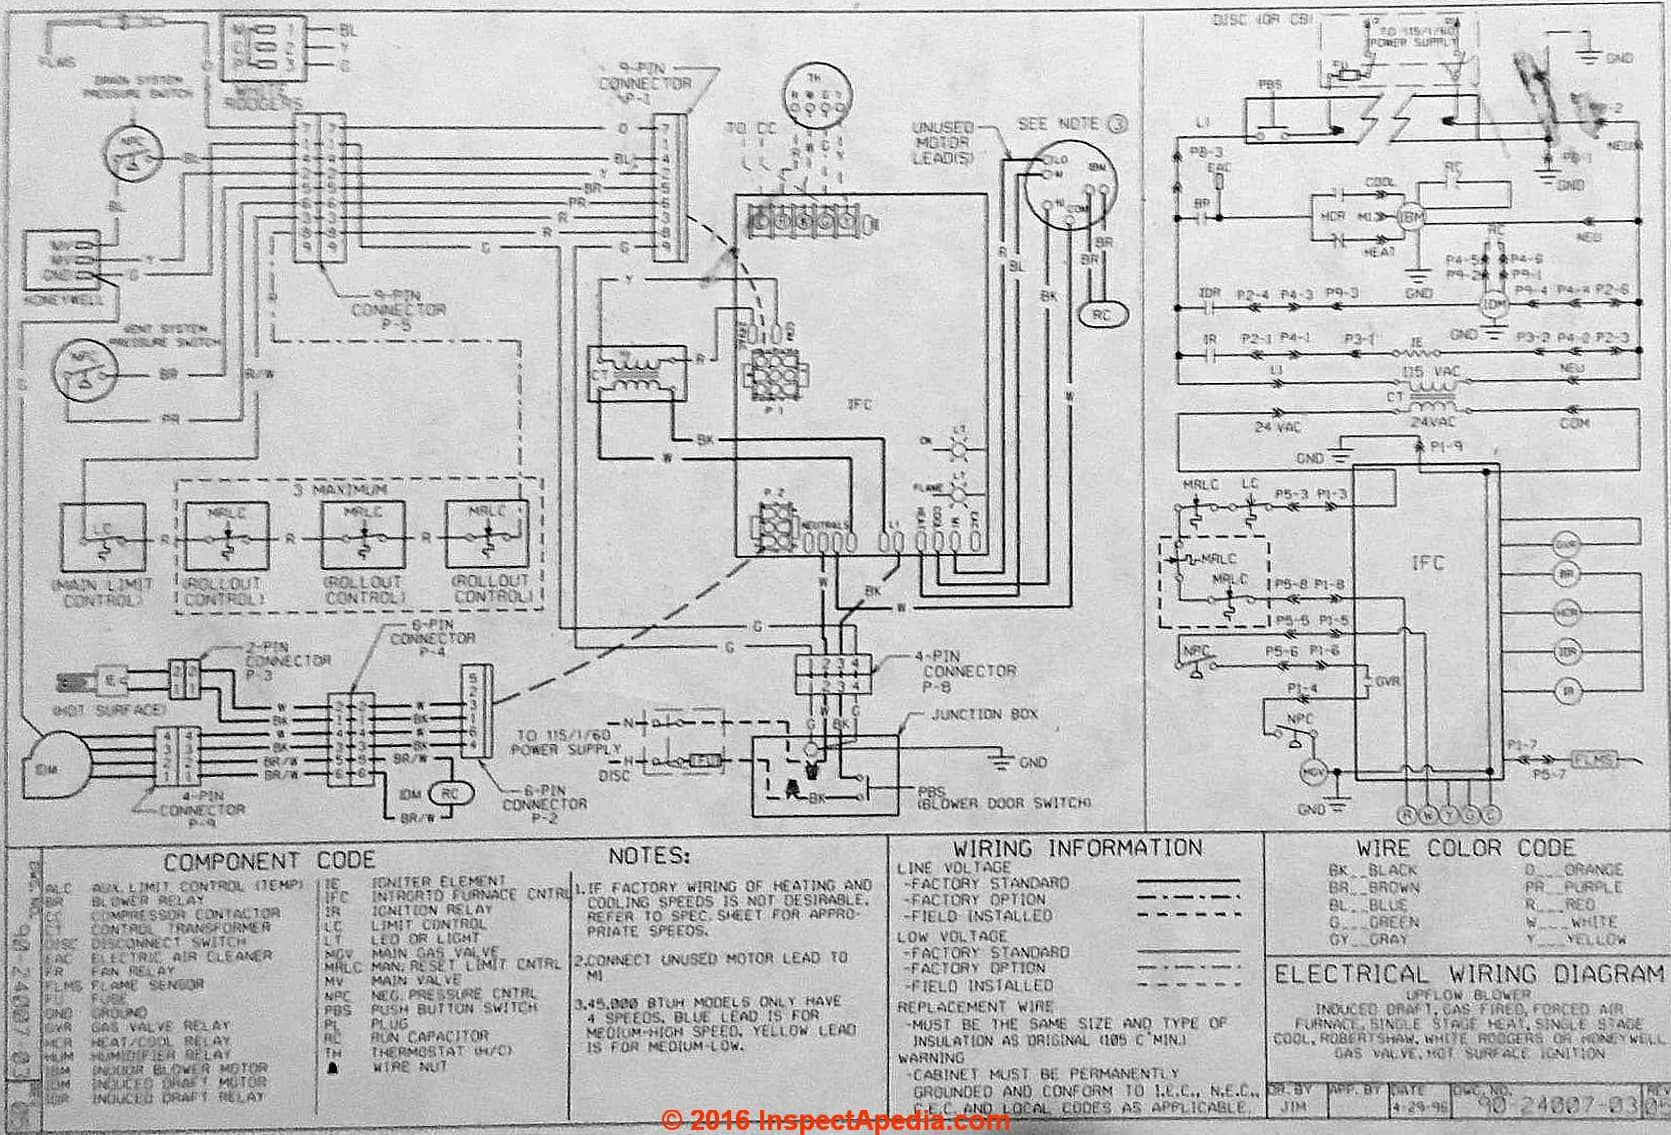 air conditioner wiring diagram troubleshooting airplane wing parts heat pump faqs